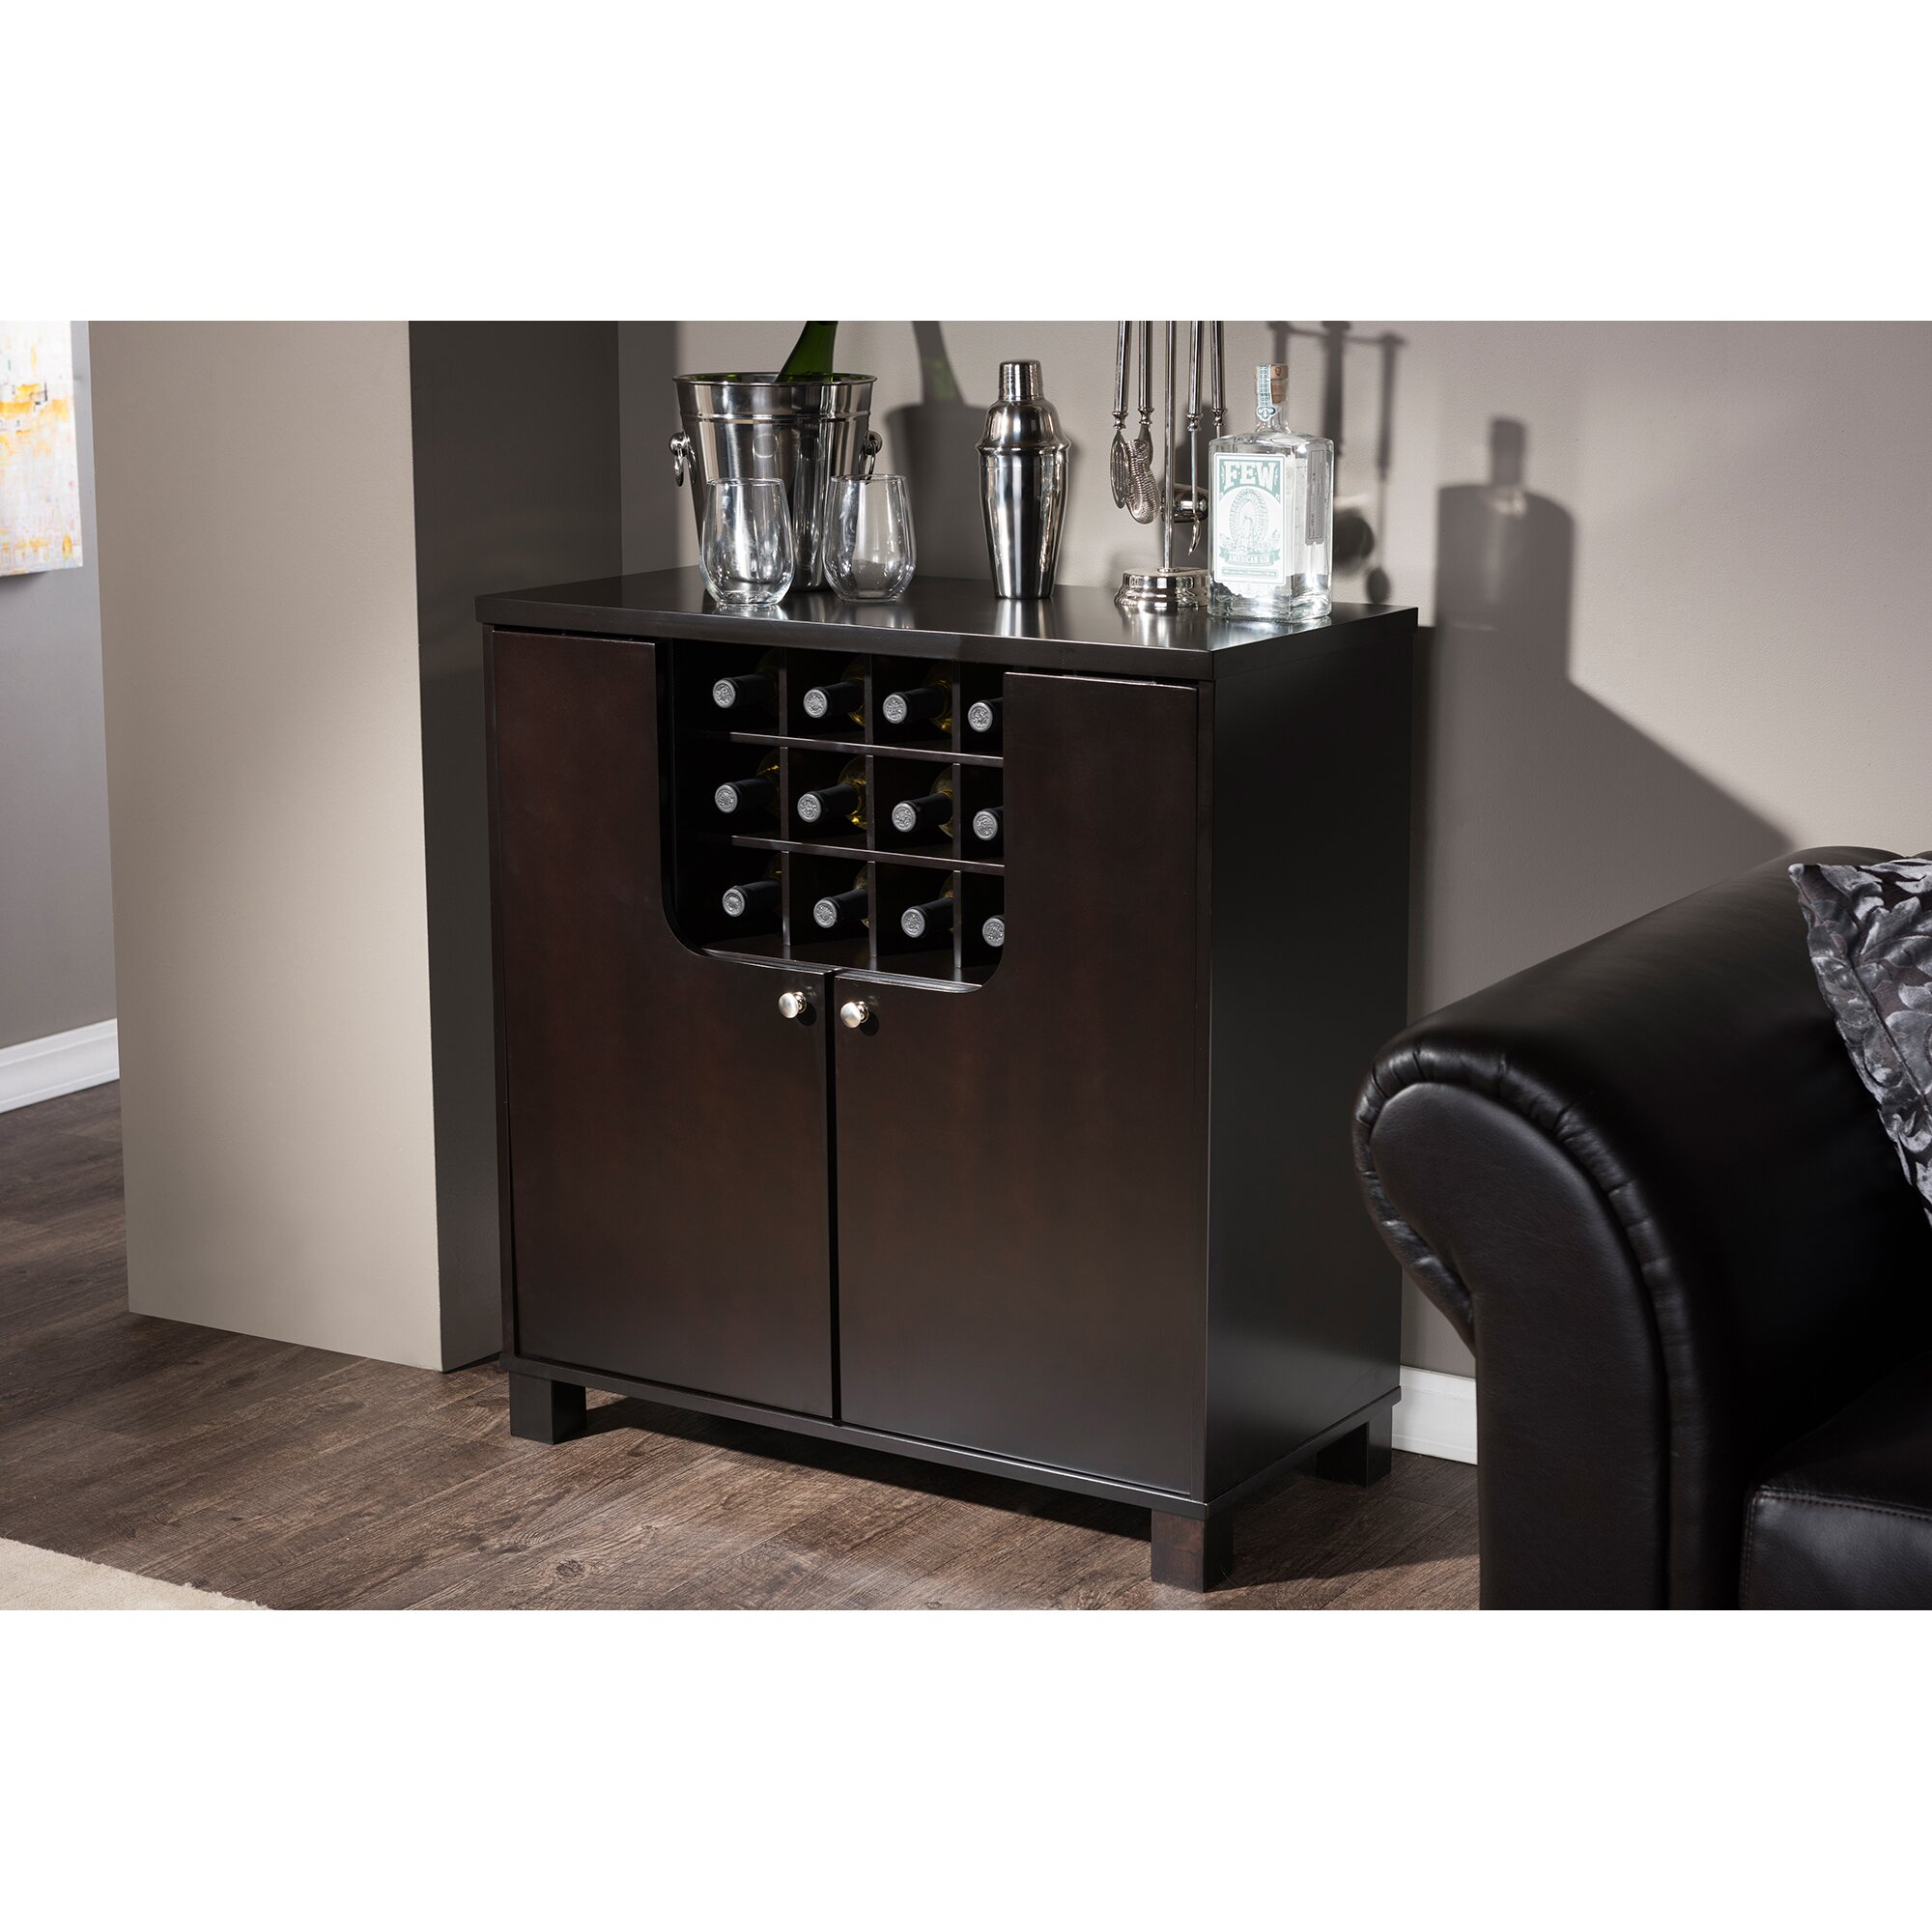 Wood Home Bar Furniture: Baxton Studio Murano Dry Bar And 12 Bottle Wine Cabinet